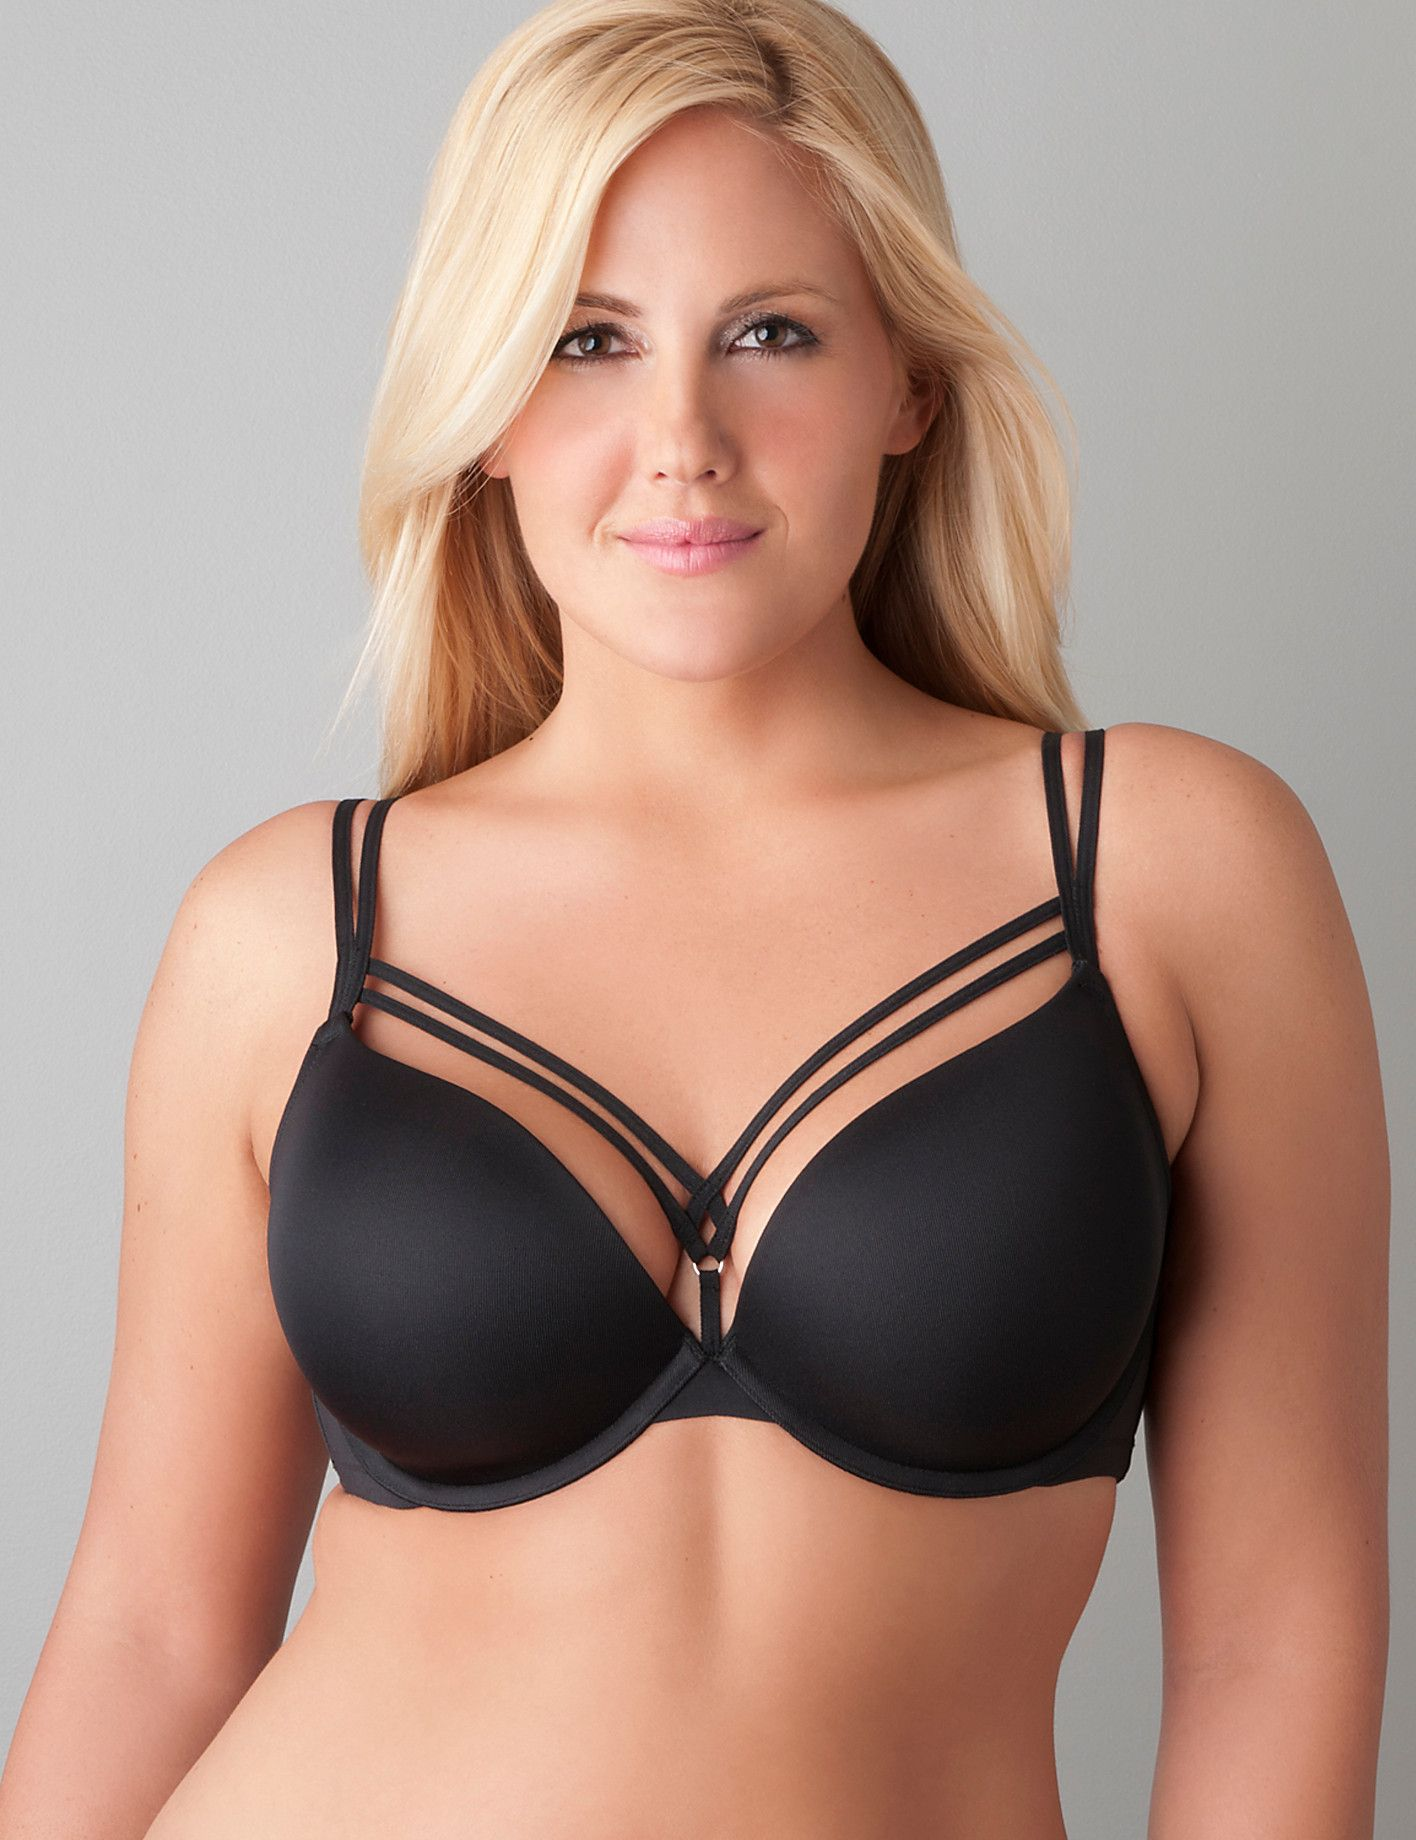 strappy plunge bra lane bryant curvy couture pinterest. Black Bedroom Furniture Sets. Home Design Ideas